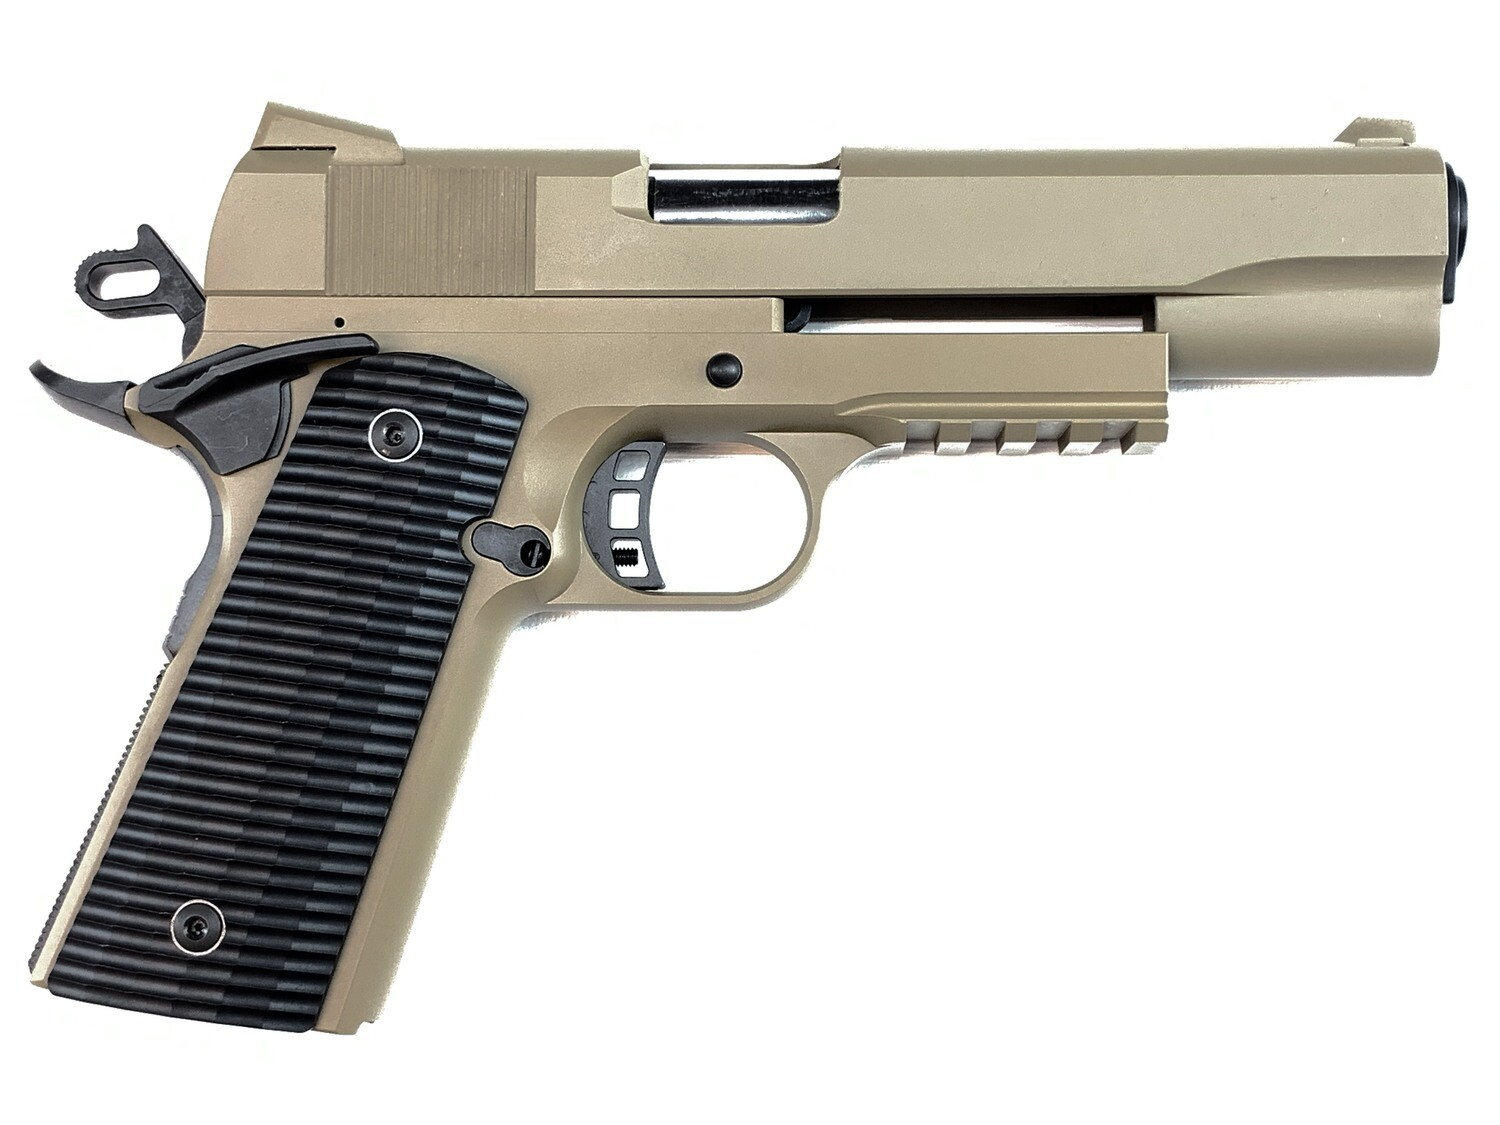 1911 Tactical 80% Builders Kit FDE - Choose Your Caliber .45 ACP or 9mm